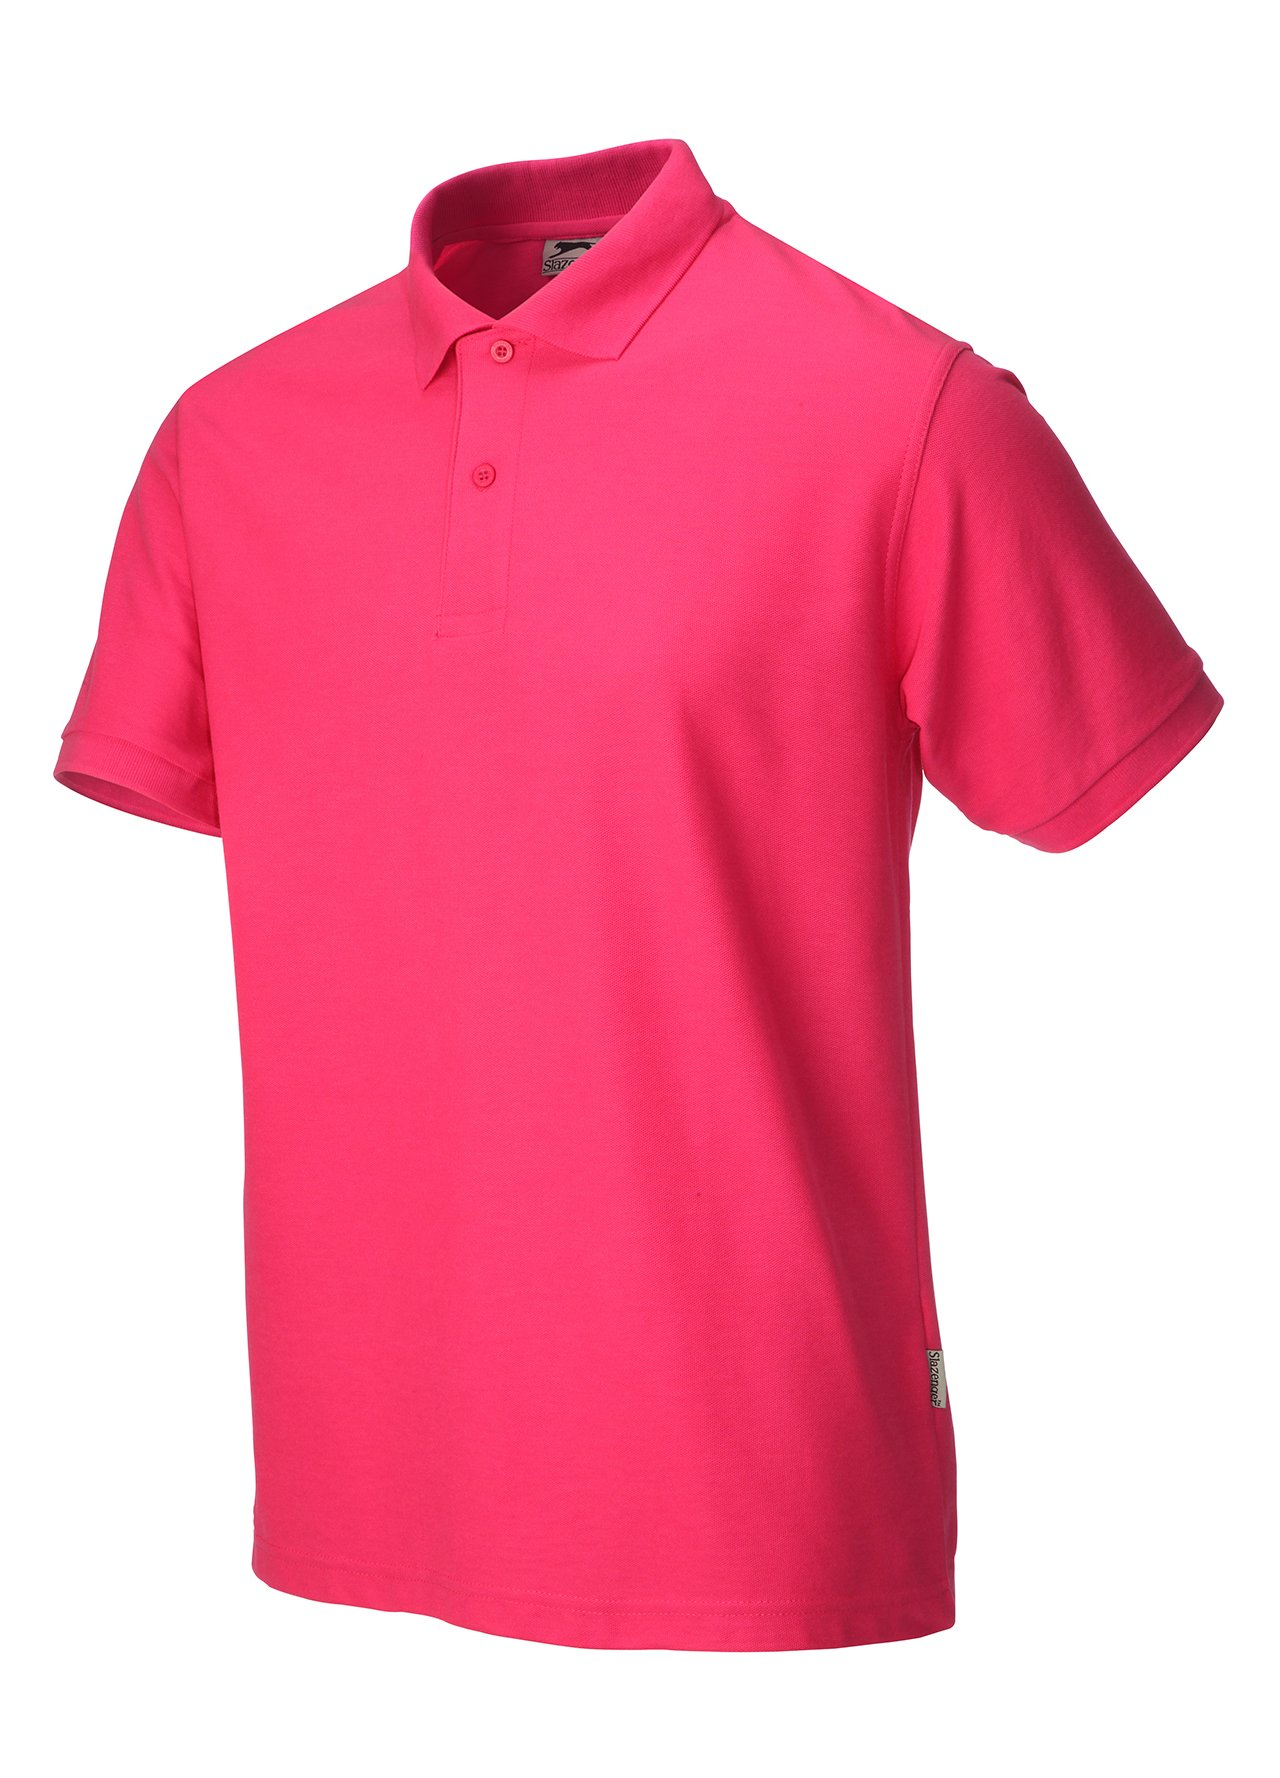 Summer sale slazenger golf polo shirt c376 from county for Polo shirts clearance sale